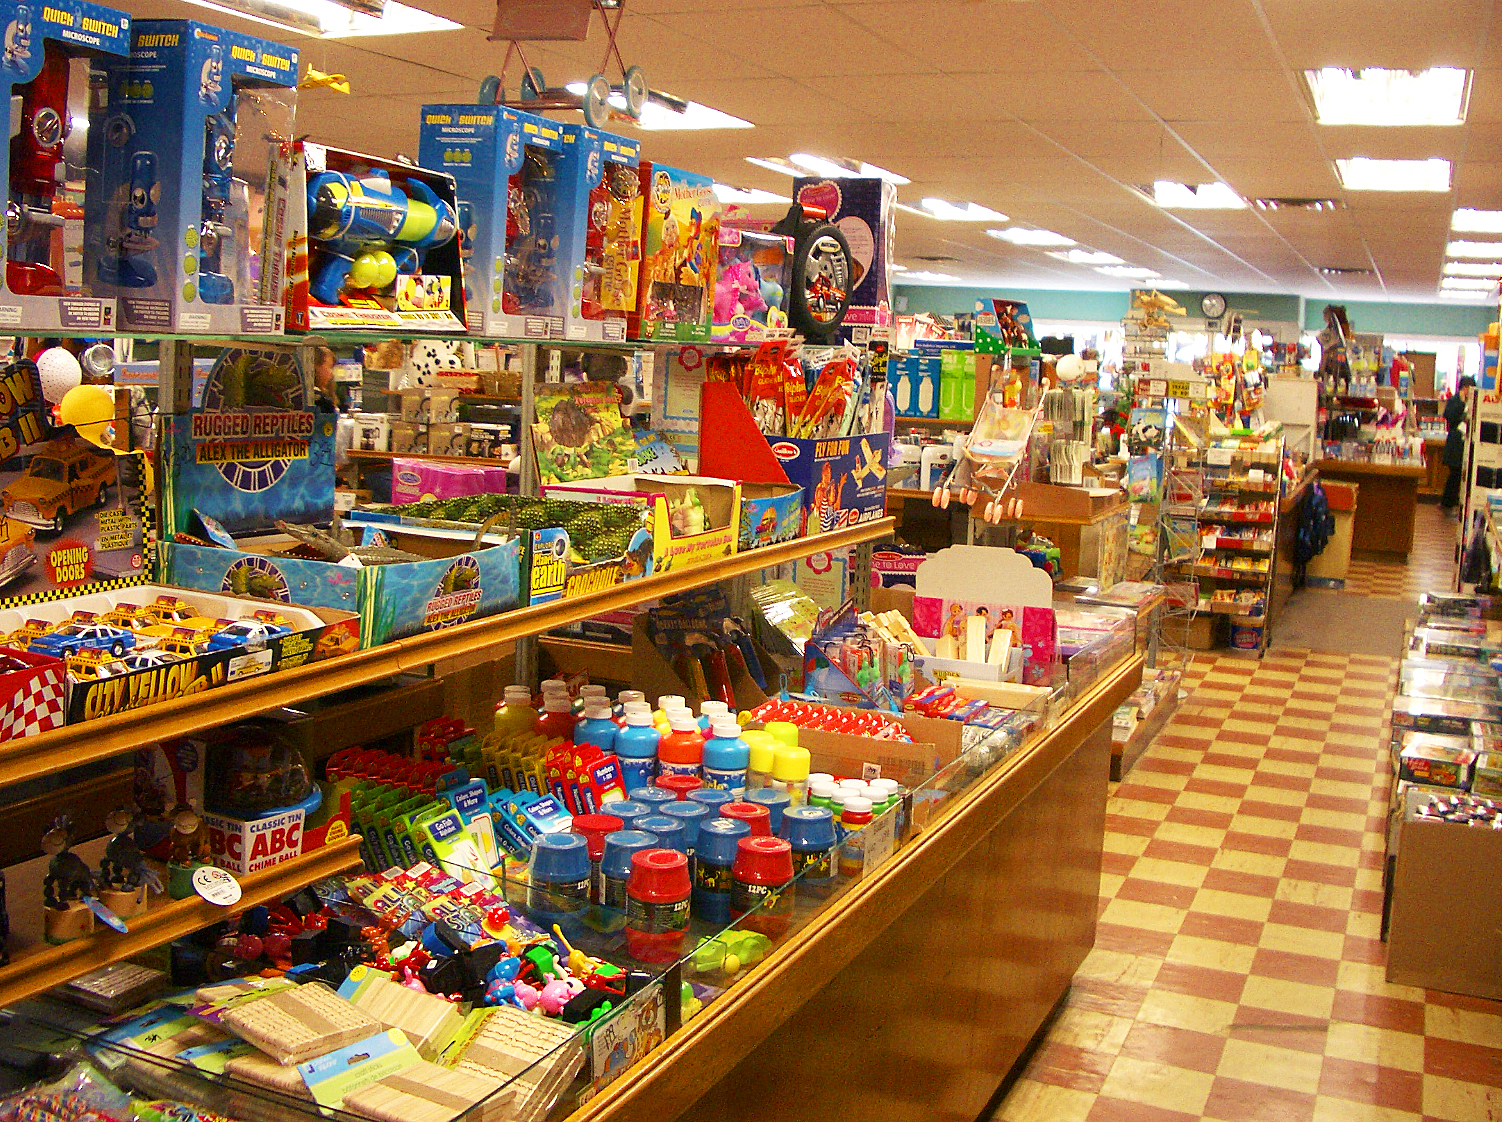 Like The 5 Dime Stores Of The Past A L Stickle Is Stocked With A Little Bit Of Everything Kitchenware Notions Yarn Hardware Toiletries